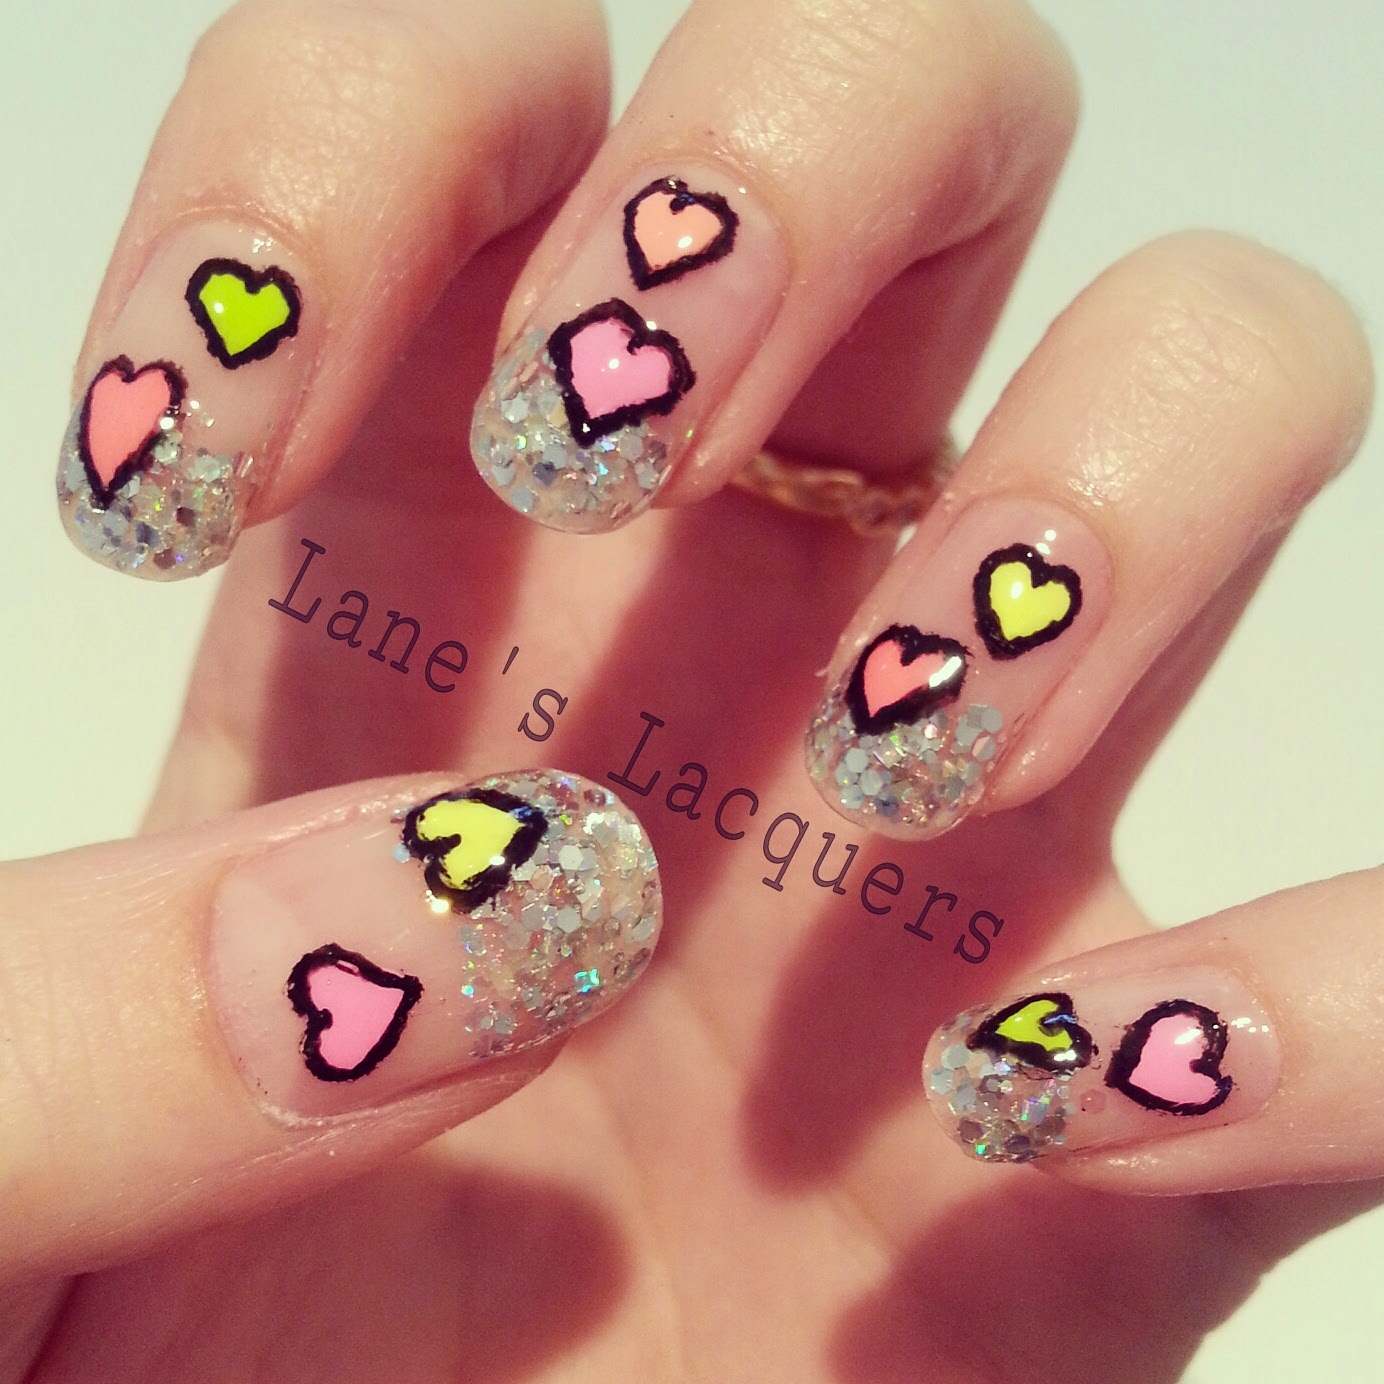 glitter-tips-neon-love-hearts-negative-space-nail-art